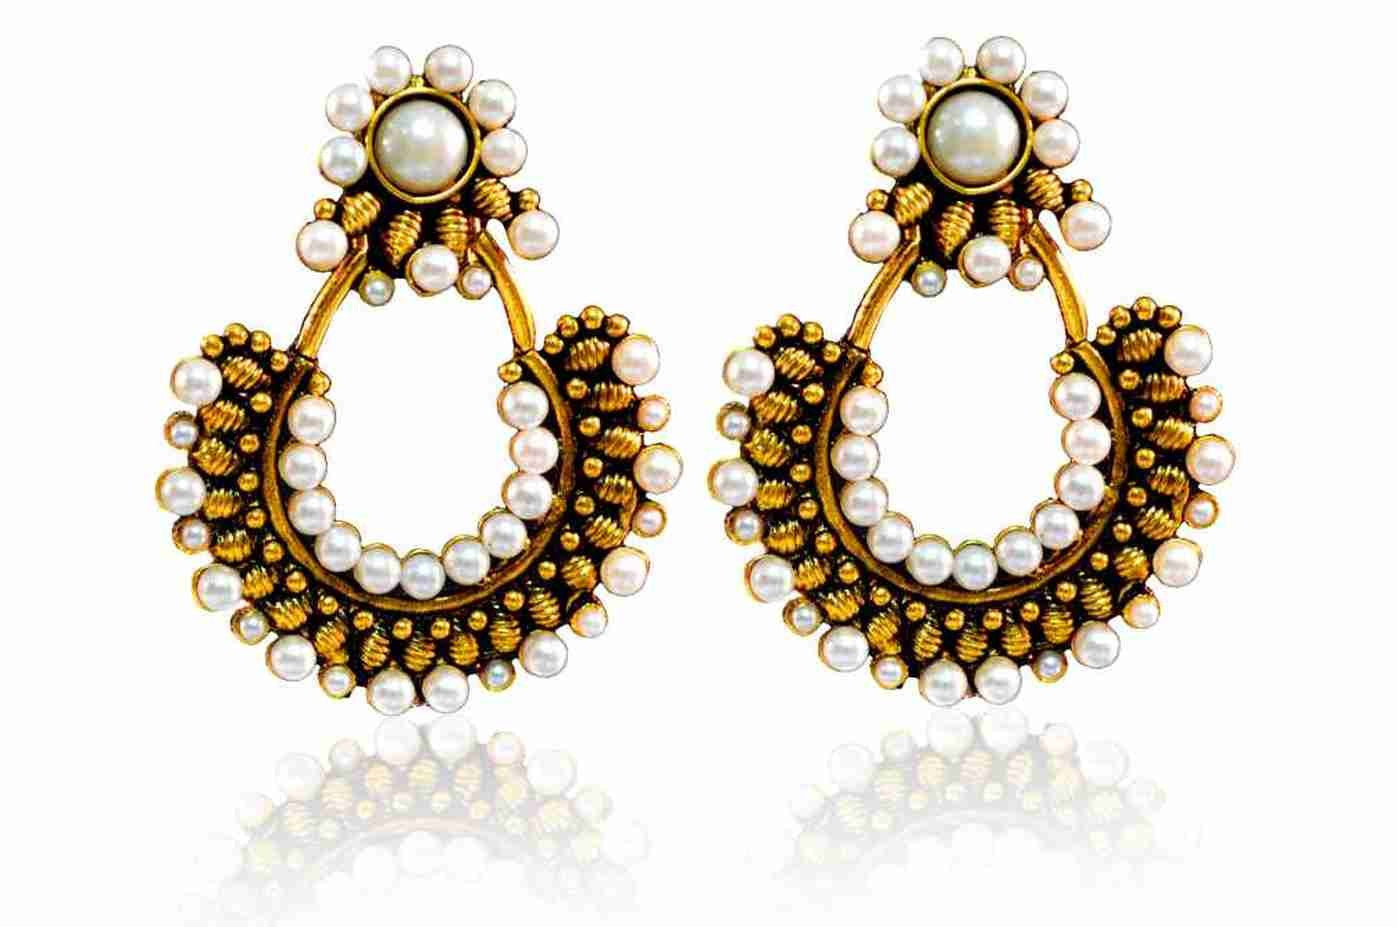 Designer Chandbali Style Earrings in Antique Golden Finish PO729 by Vastradi Jewels